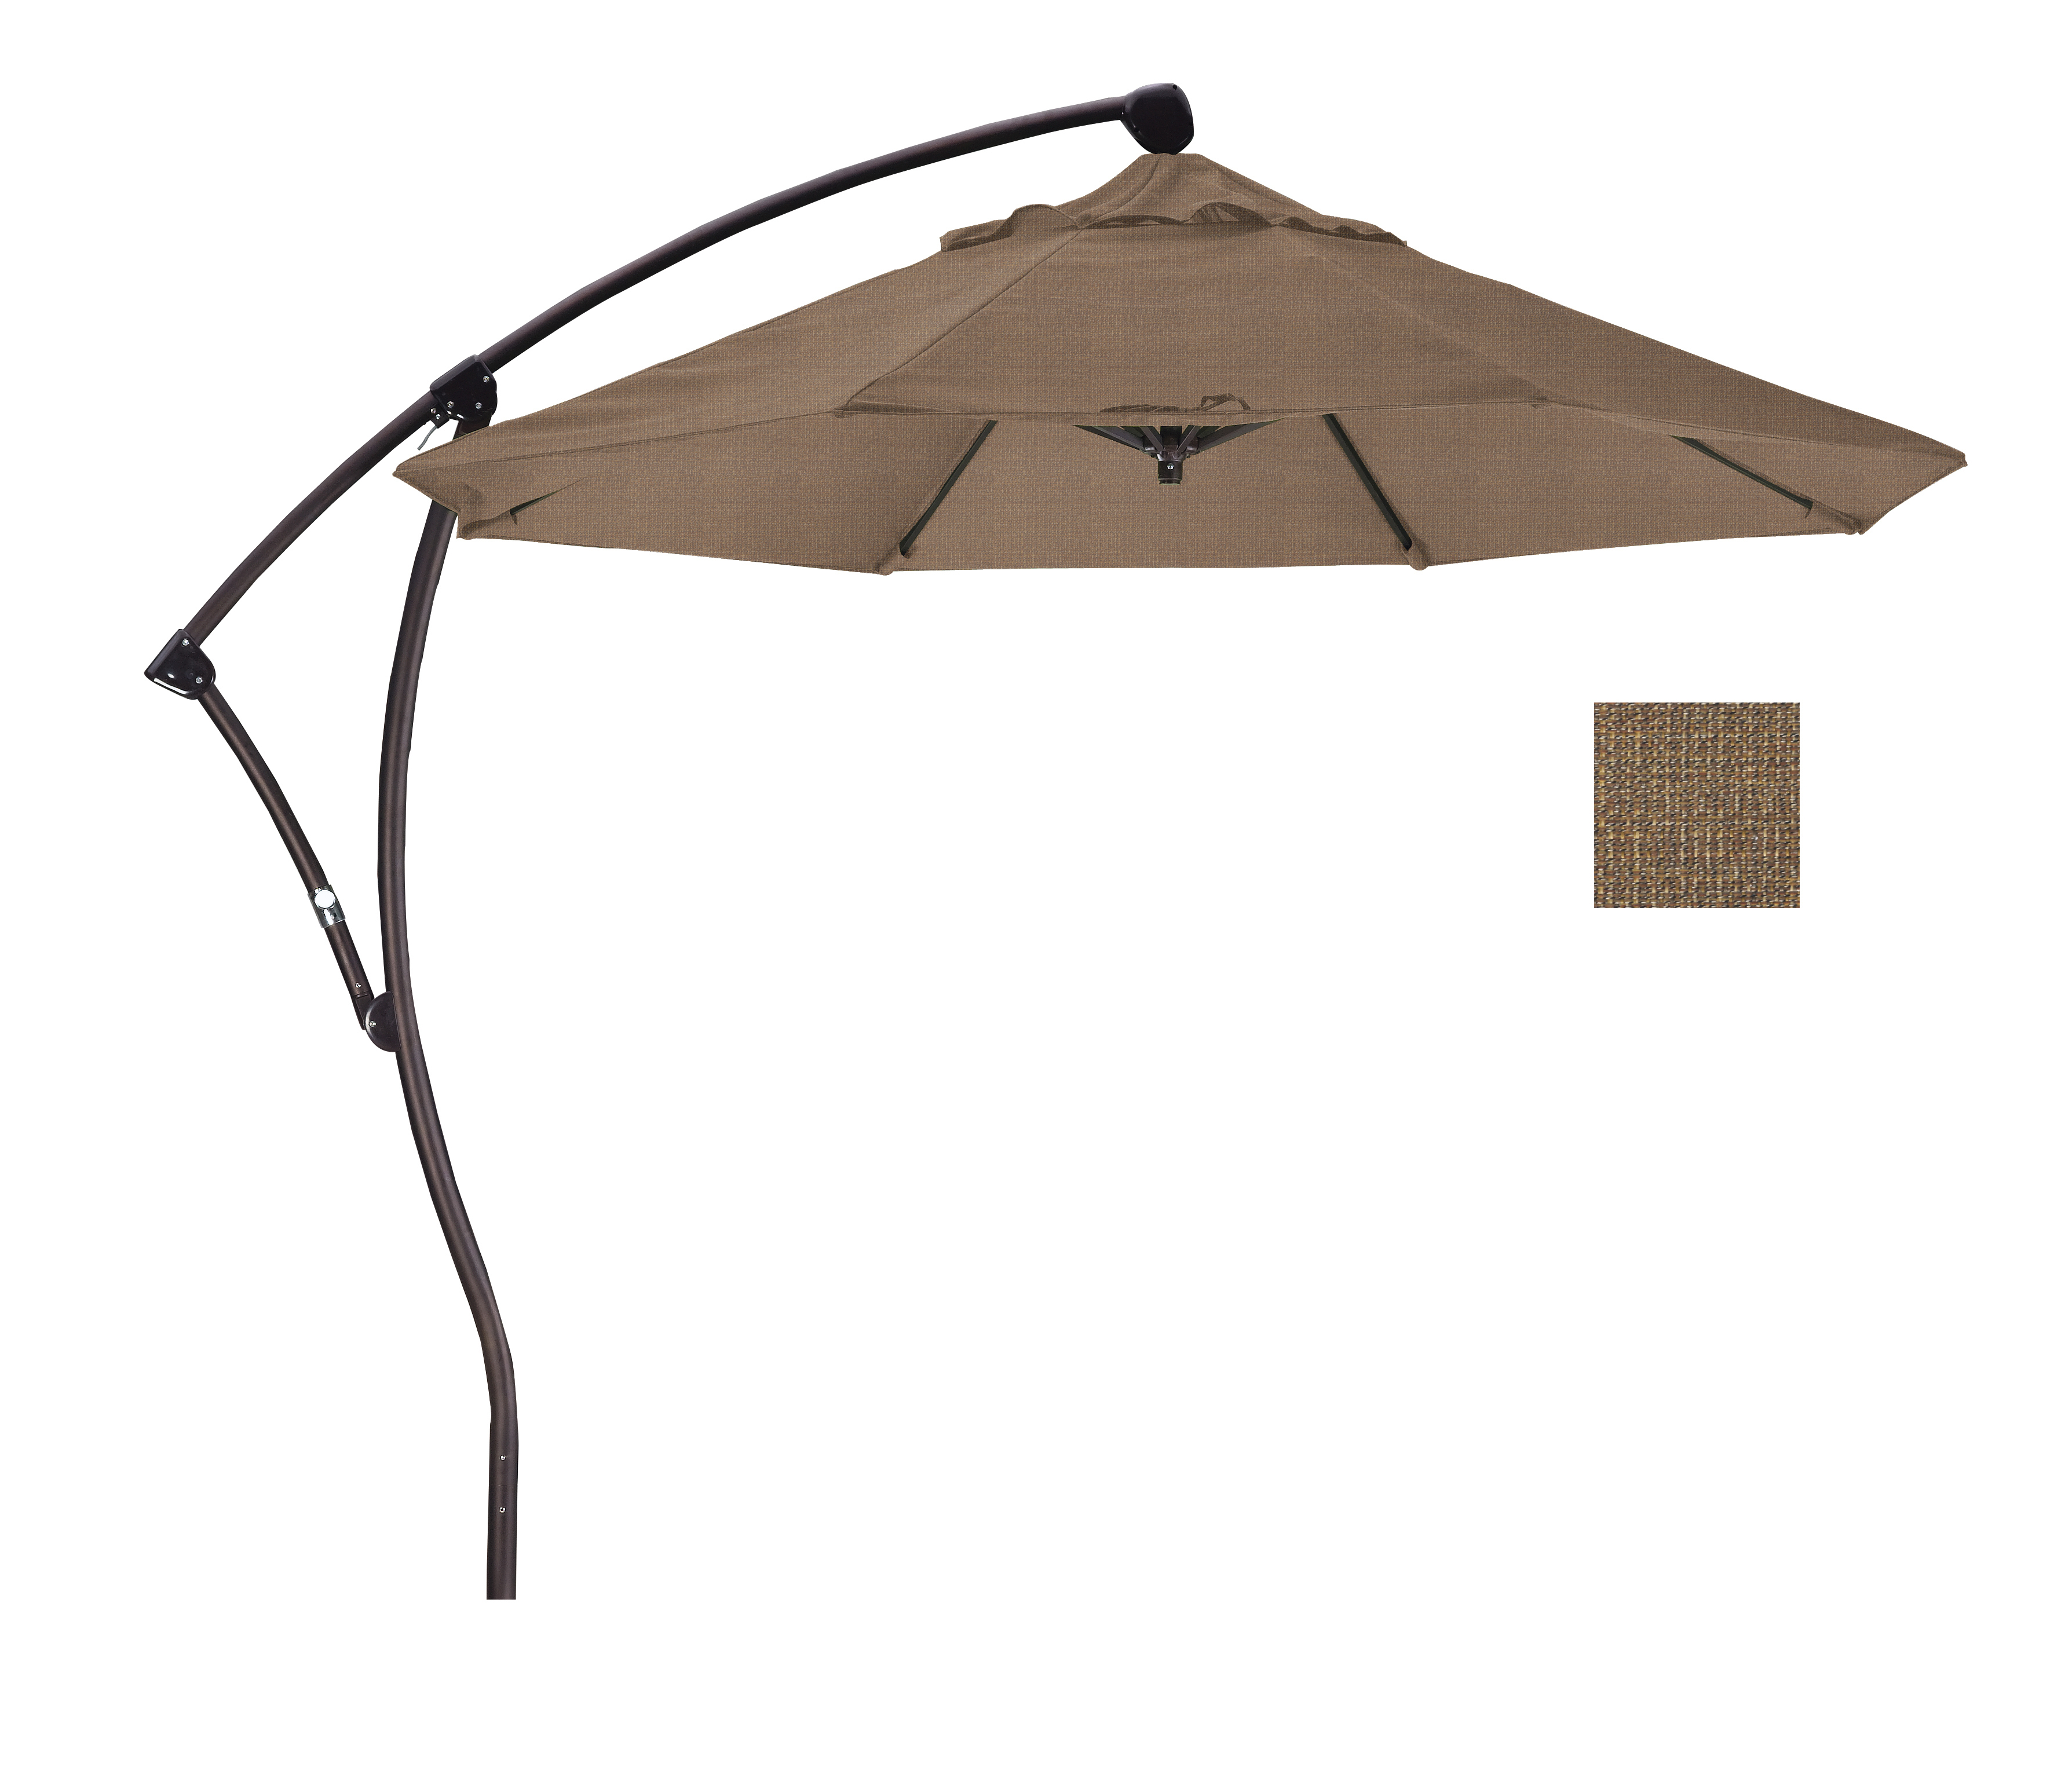 Widely Used 9 Bayside Series Cantilever With Bronze Aluminum Pole Aluminum Ribs Intended For Bayside Series Cantilever Umbrellas (View 20 of 20)